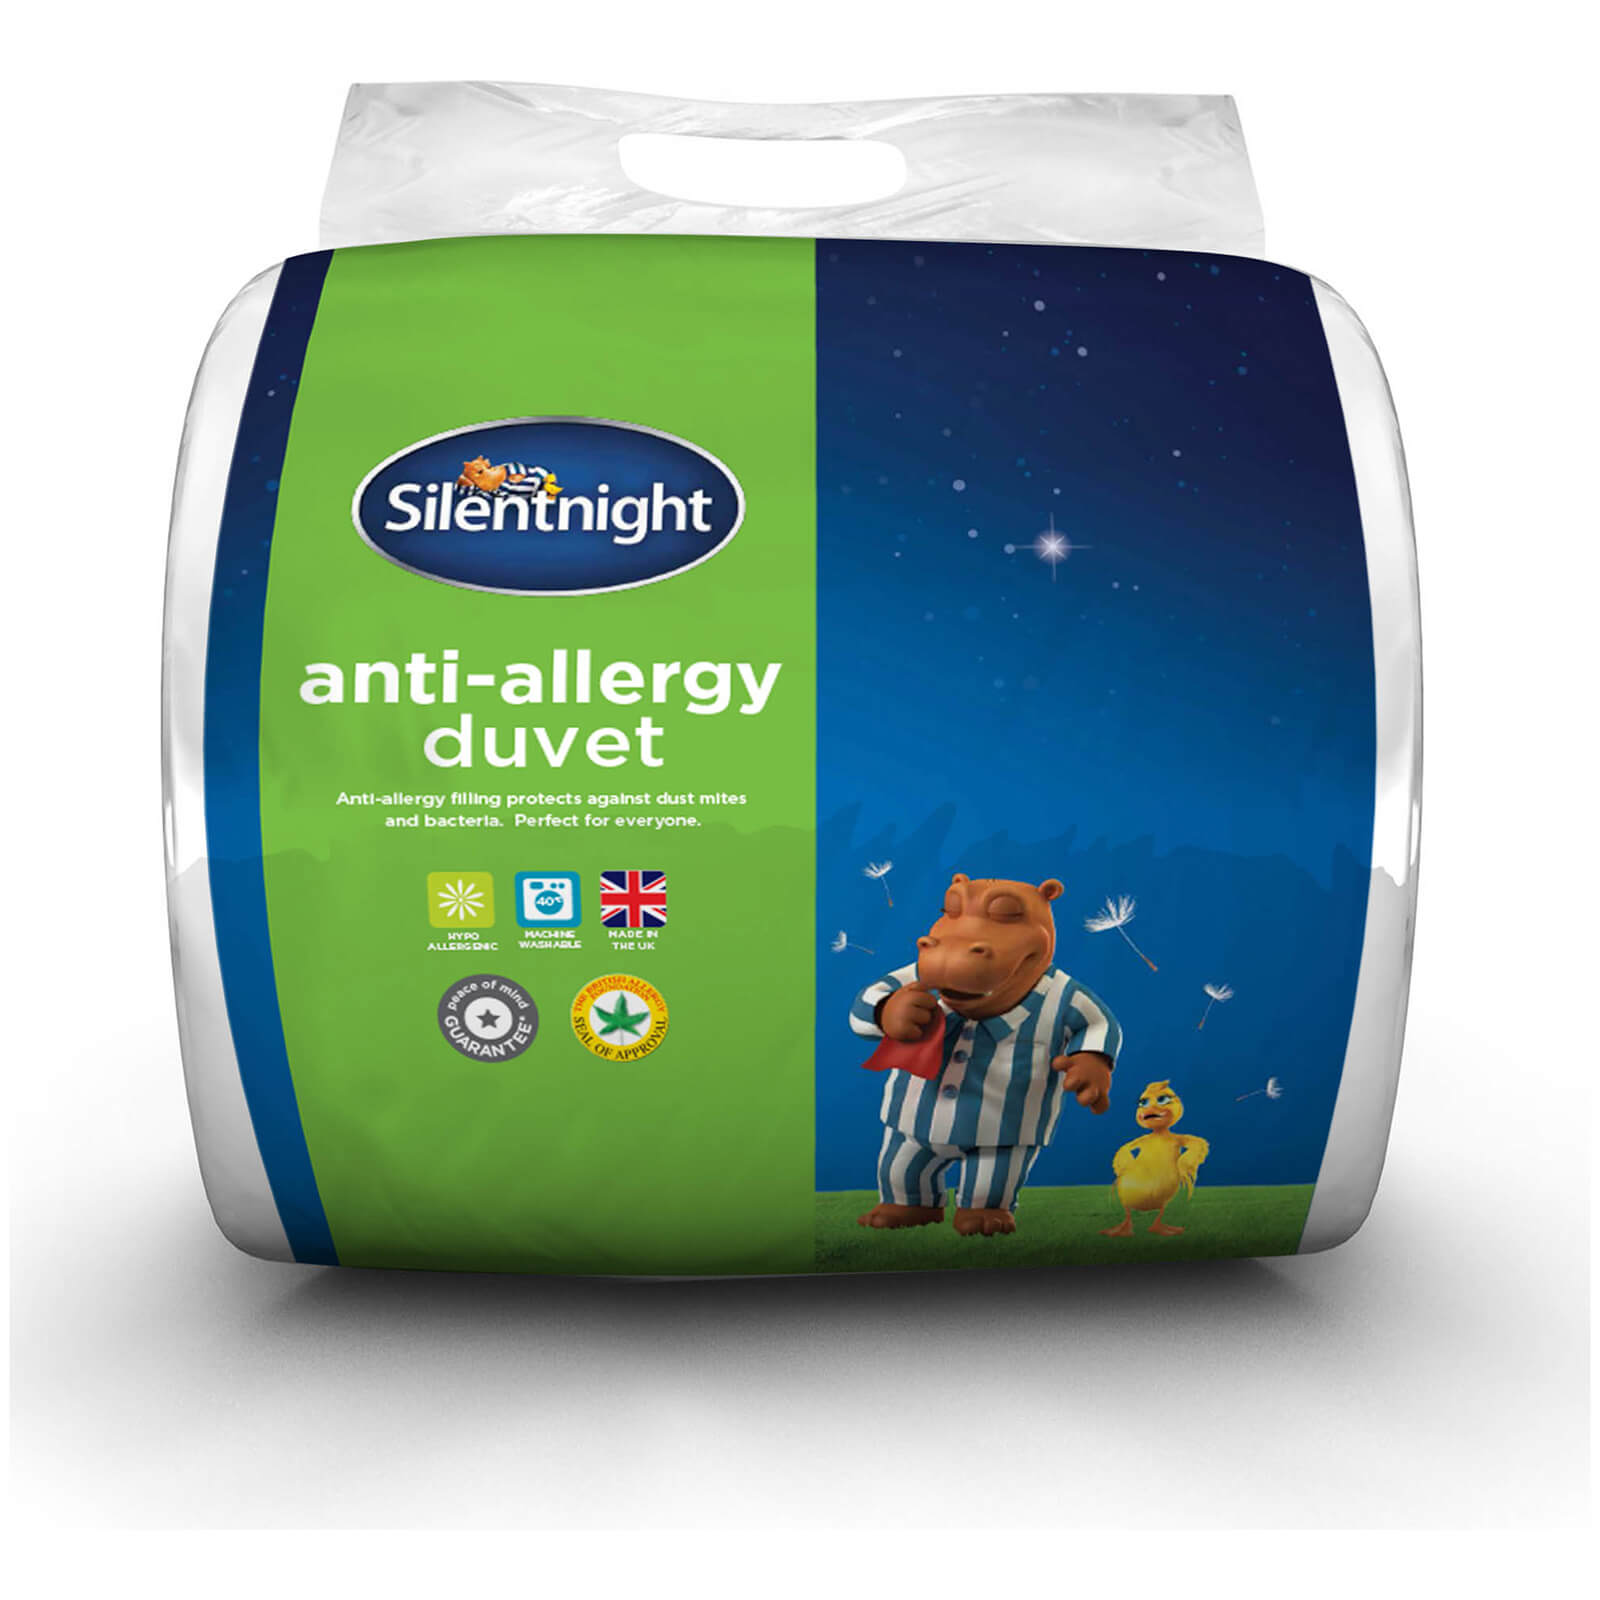 Silentnight Anti Allergy Duvet - 4.5 Tog